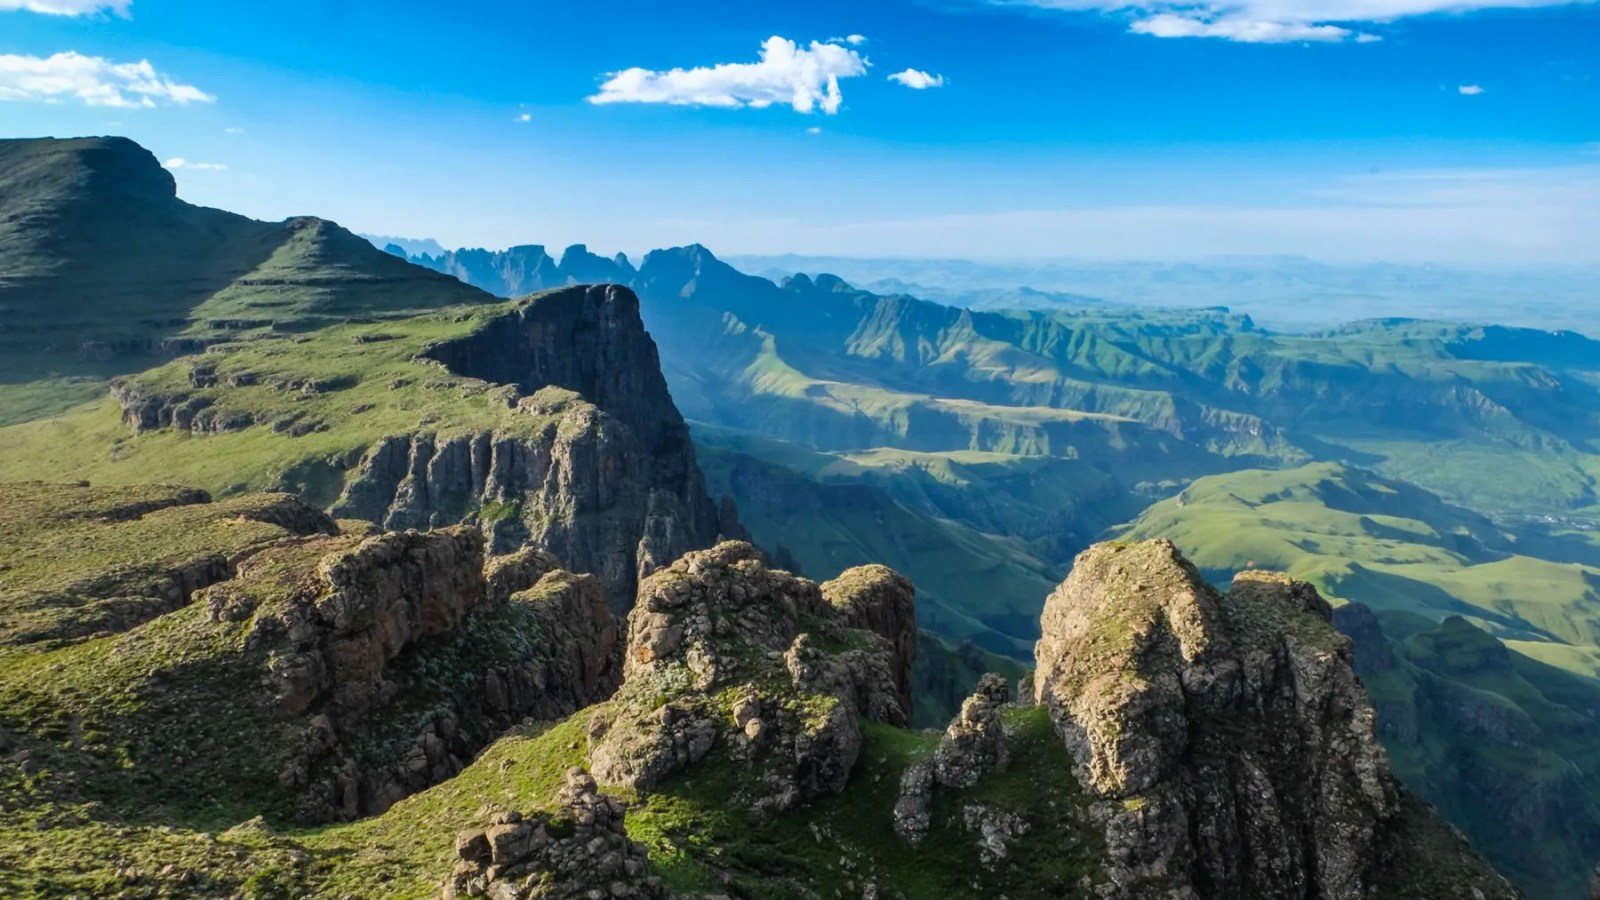 photo of the valley from the mountain plateau in the drakensberg mountains